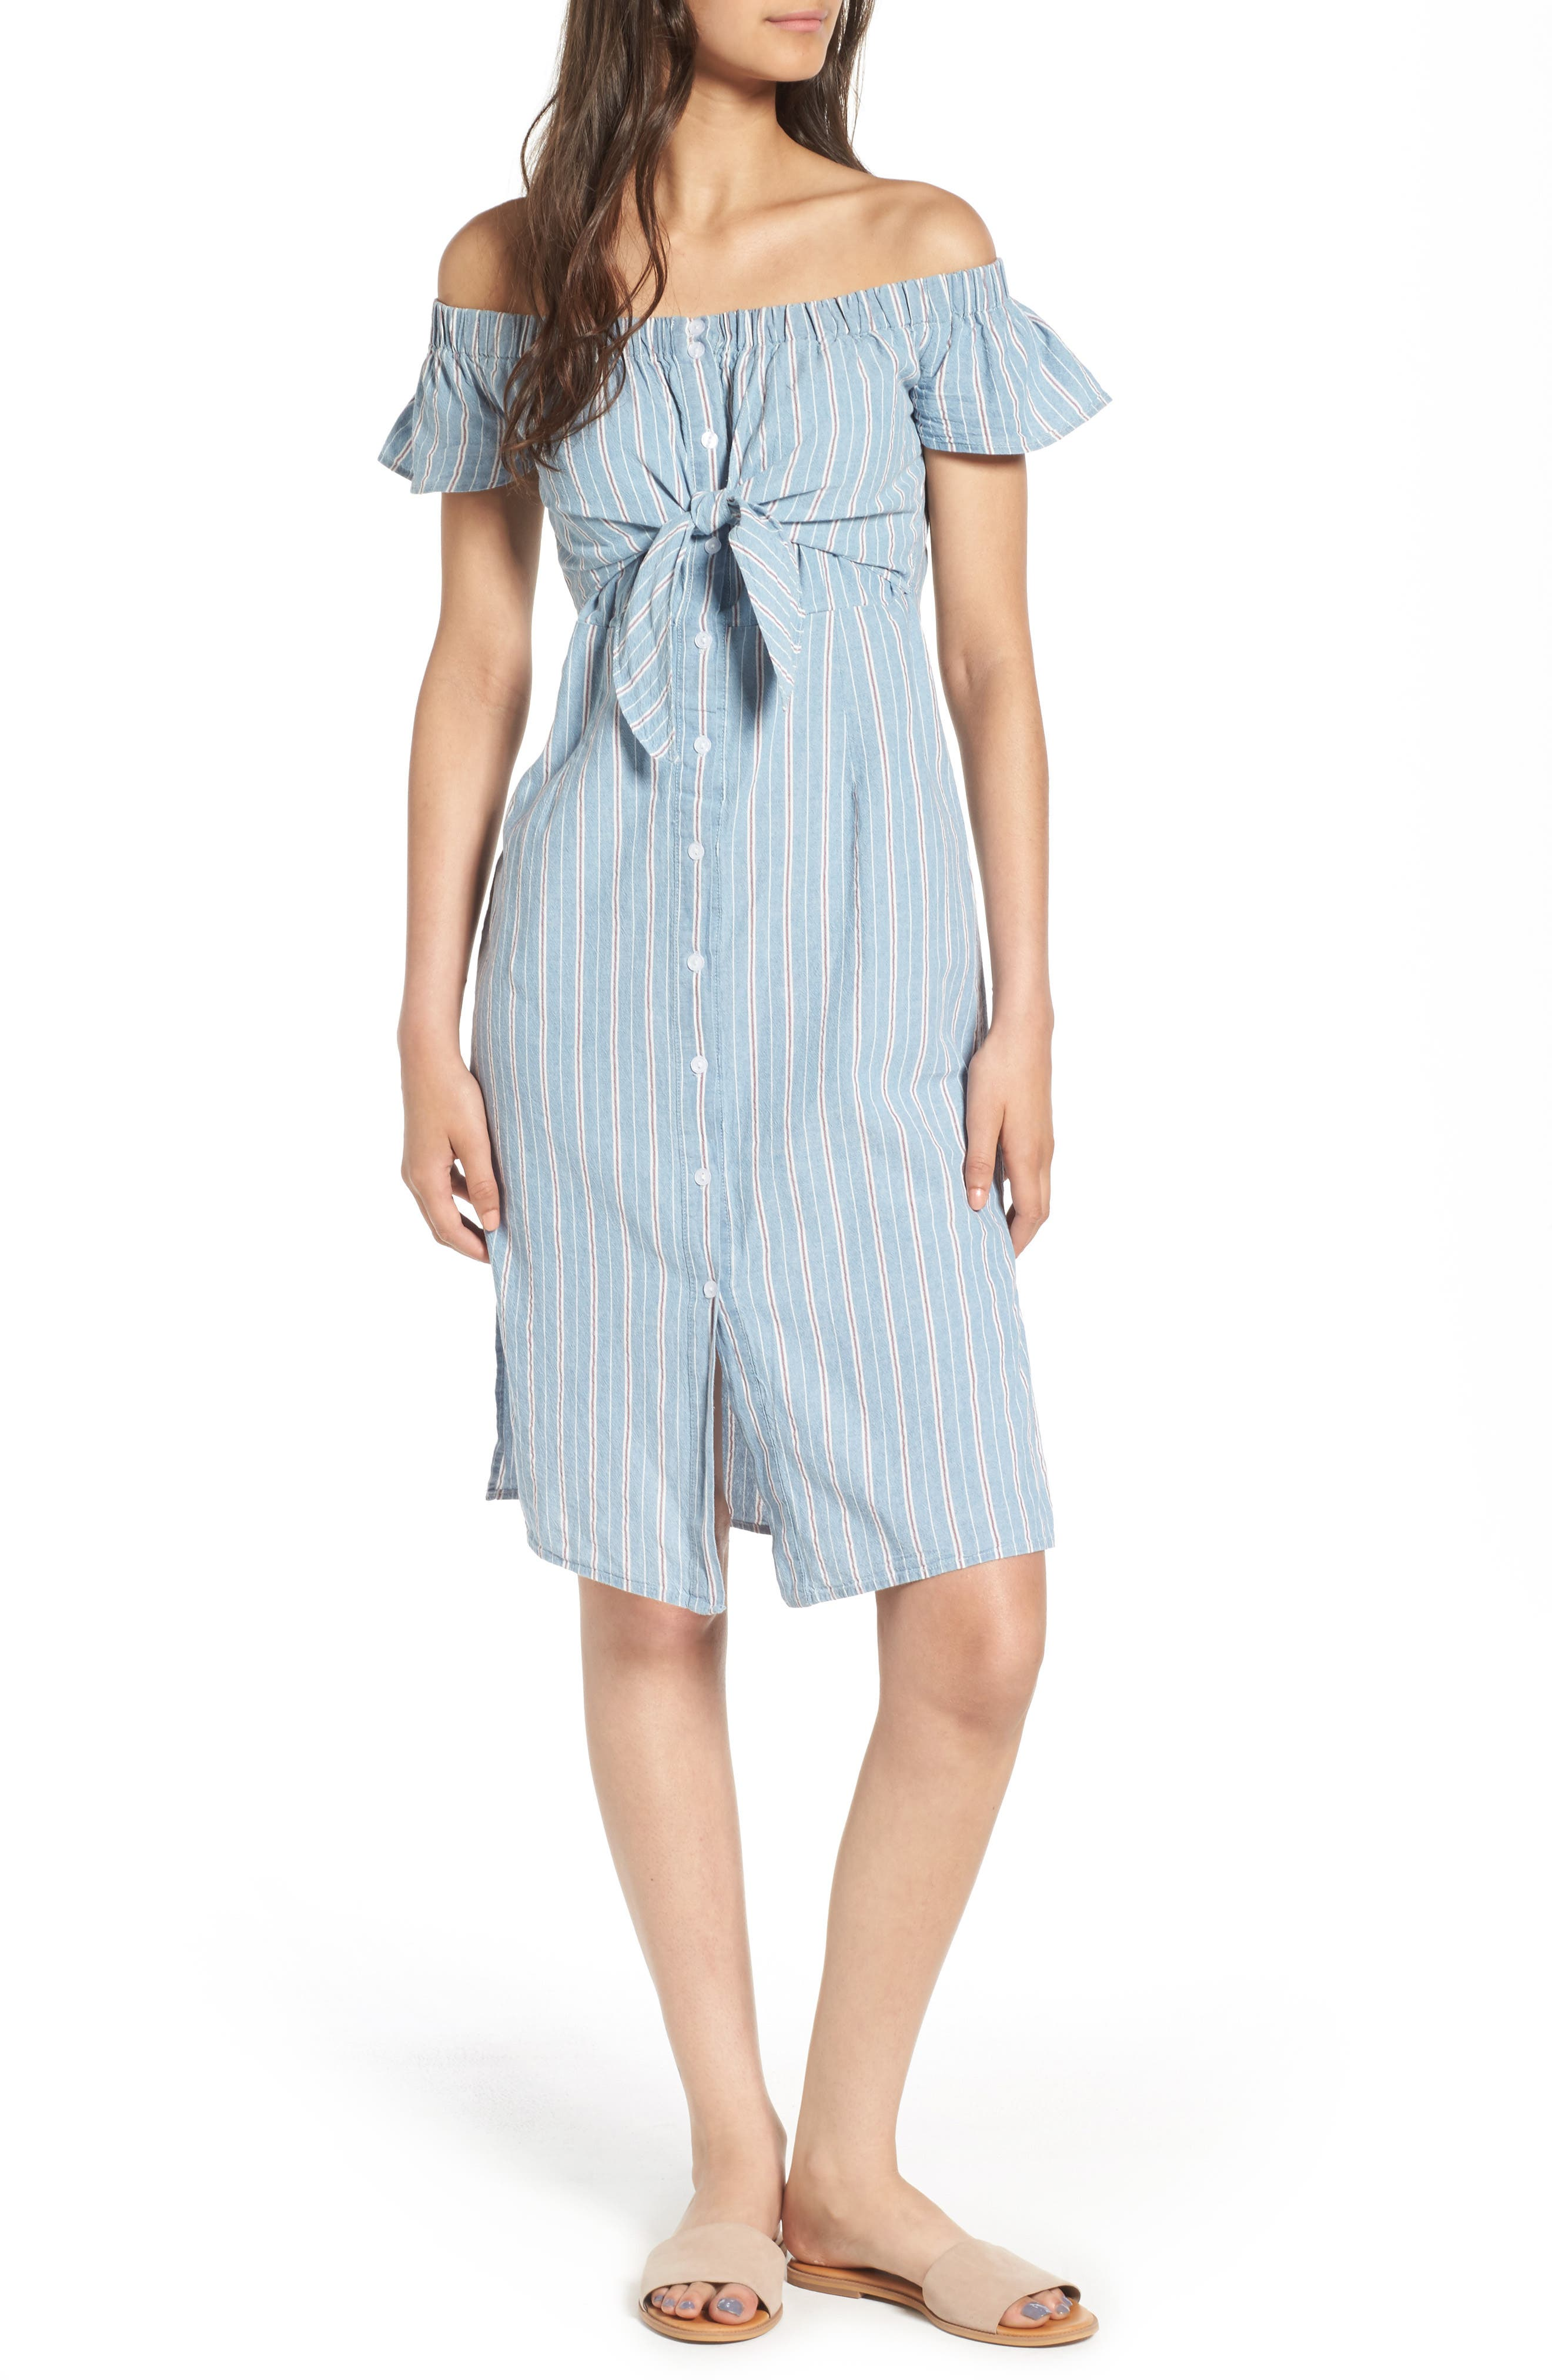 Alternate Image 1 Selected - Everly Tie Waist Off the Shoulder Dress